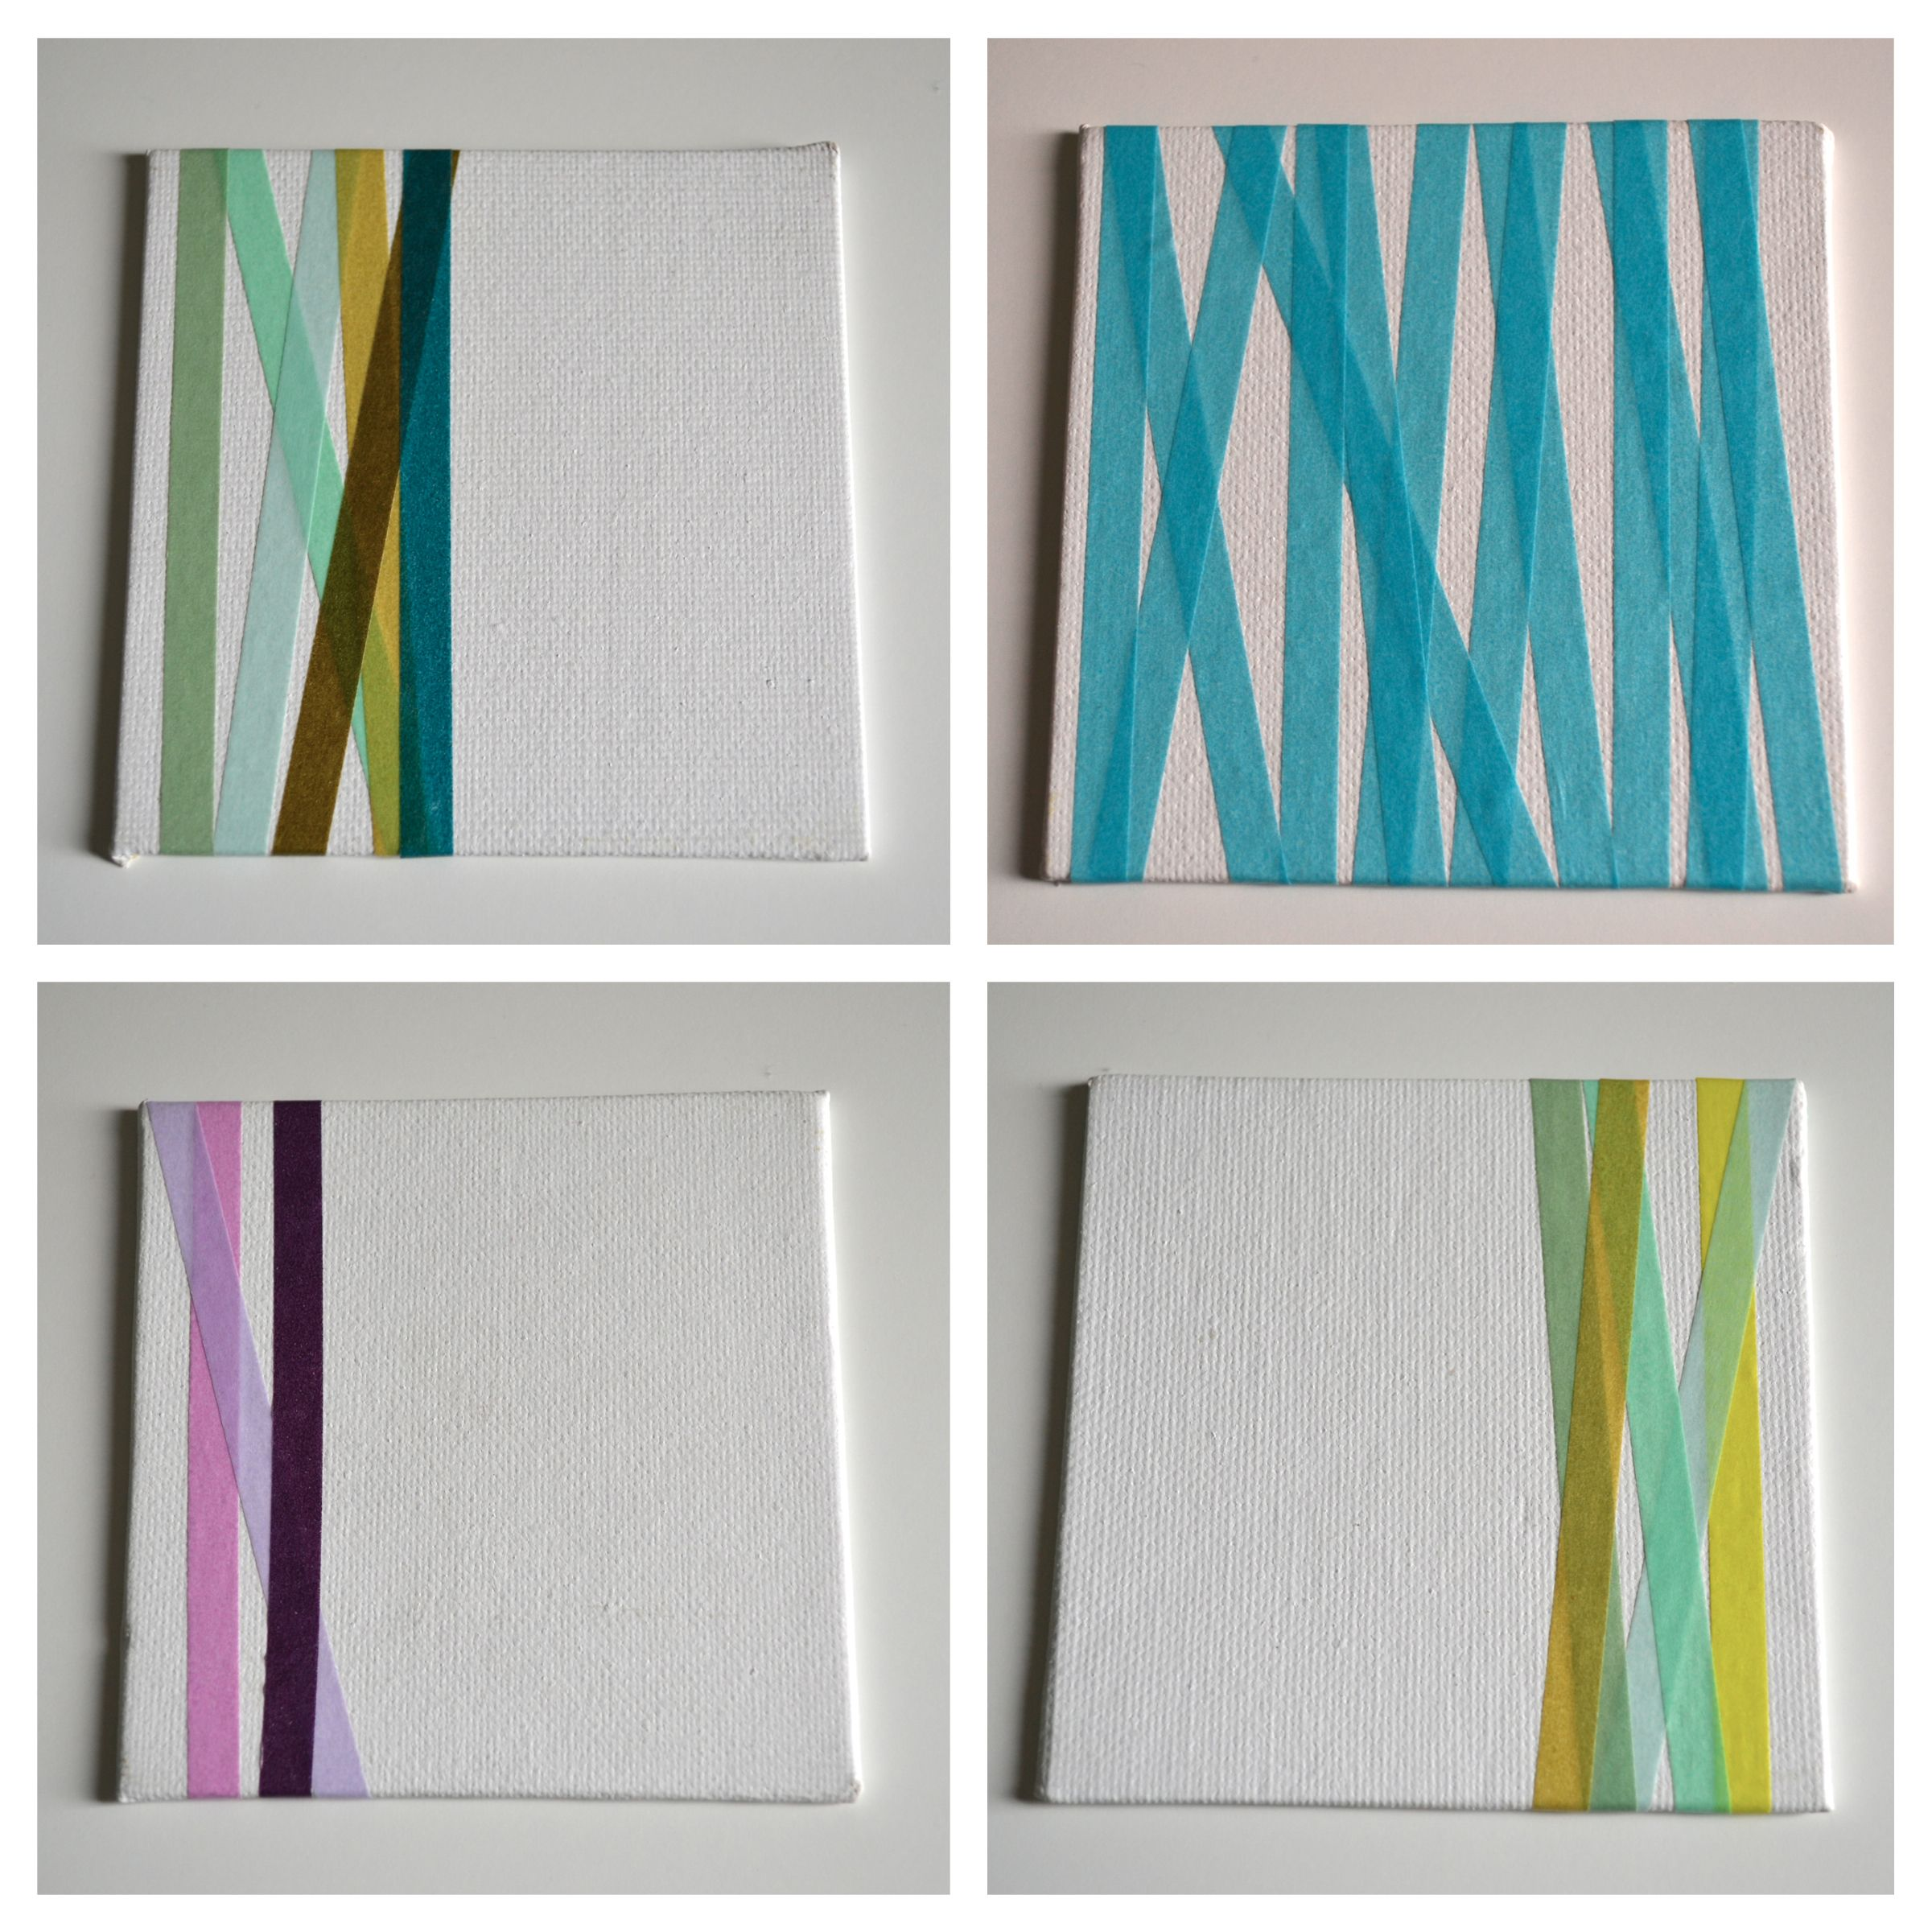 washi tape + canvas = DIY wall art | Dco toute simple ...